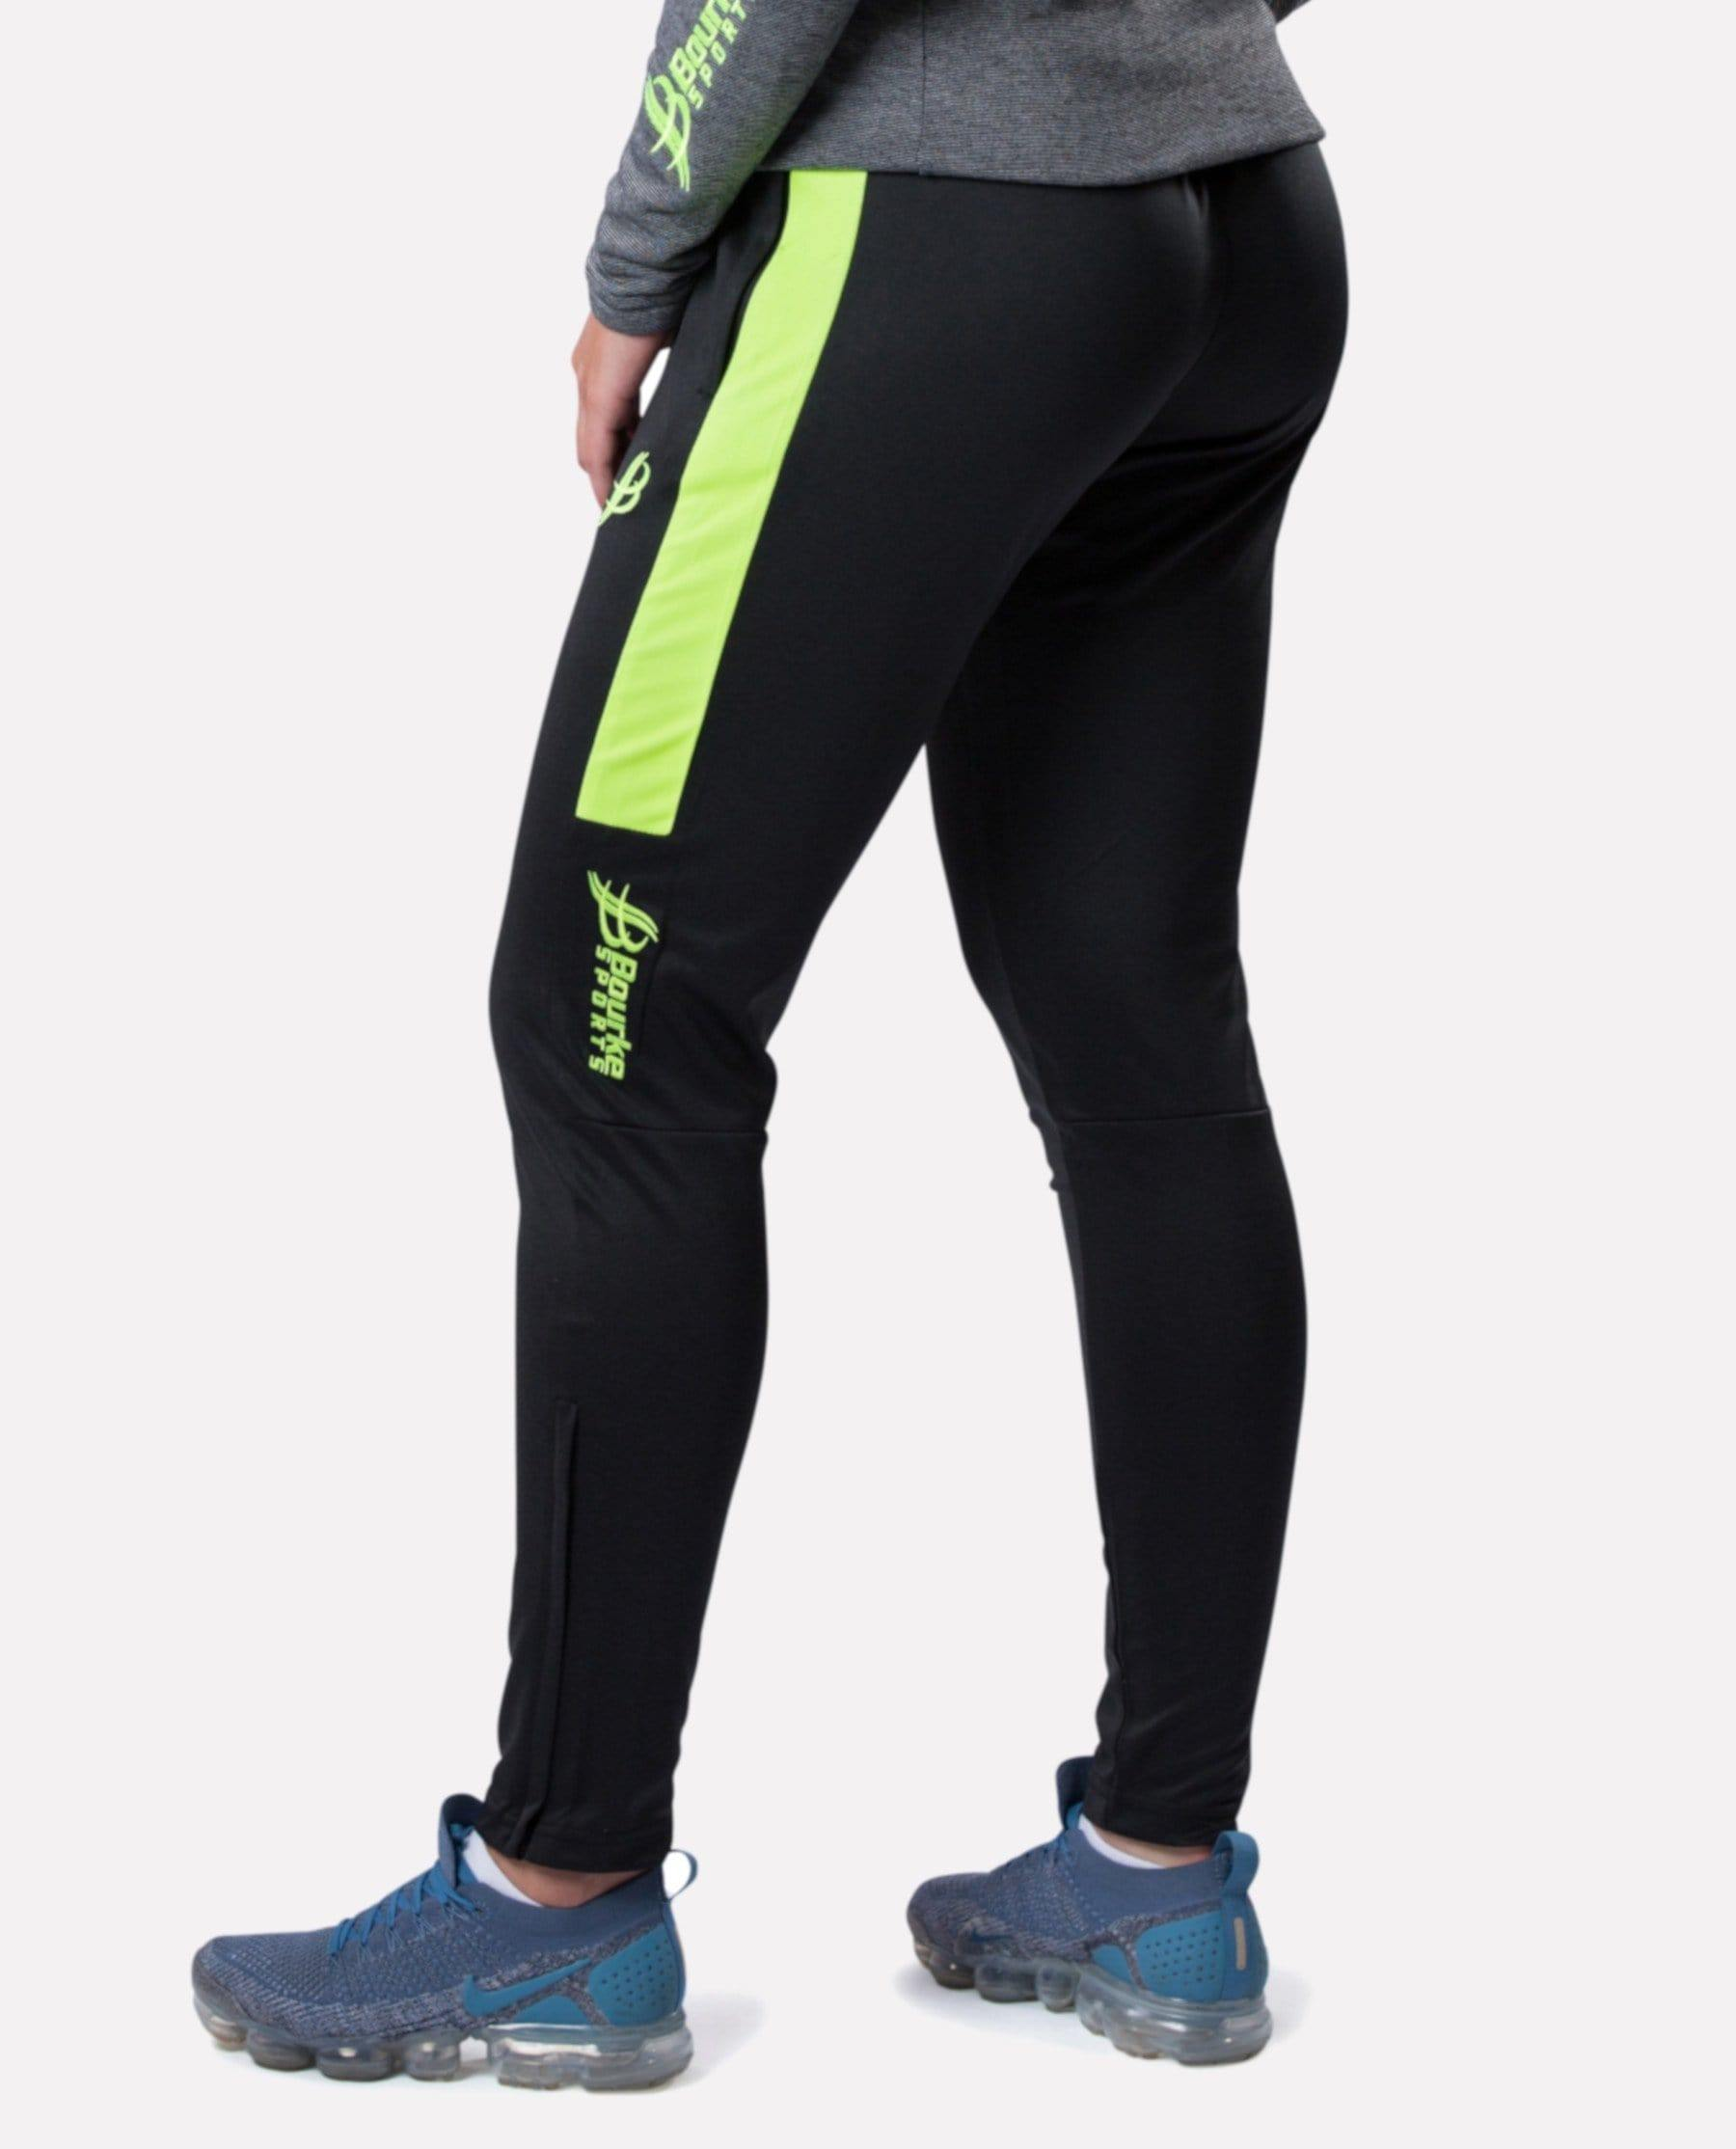 ALPHA Kids Skinny Pants (Black/Luminous) - Bourke Sports Limited